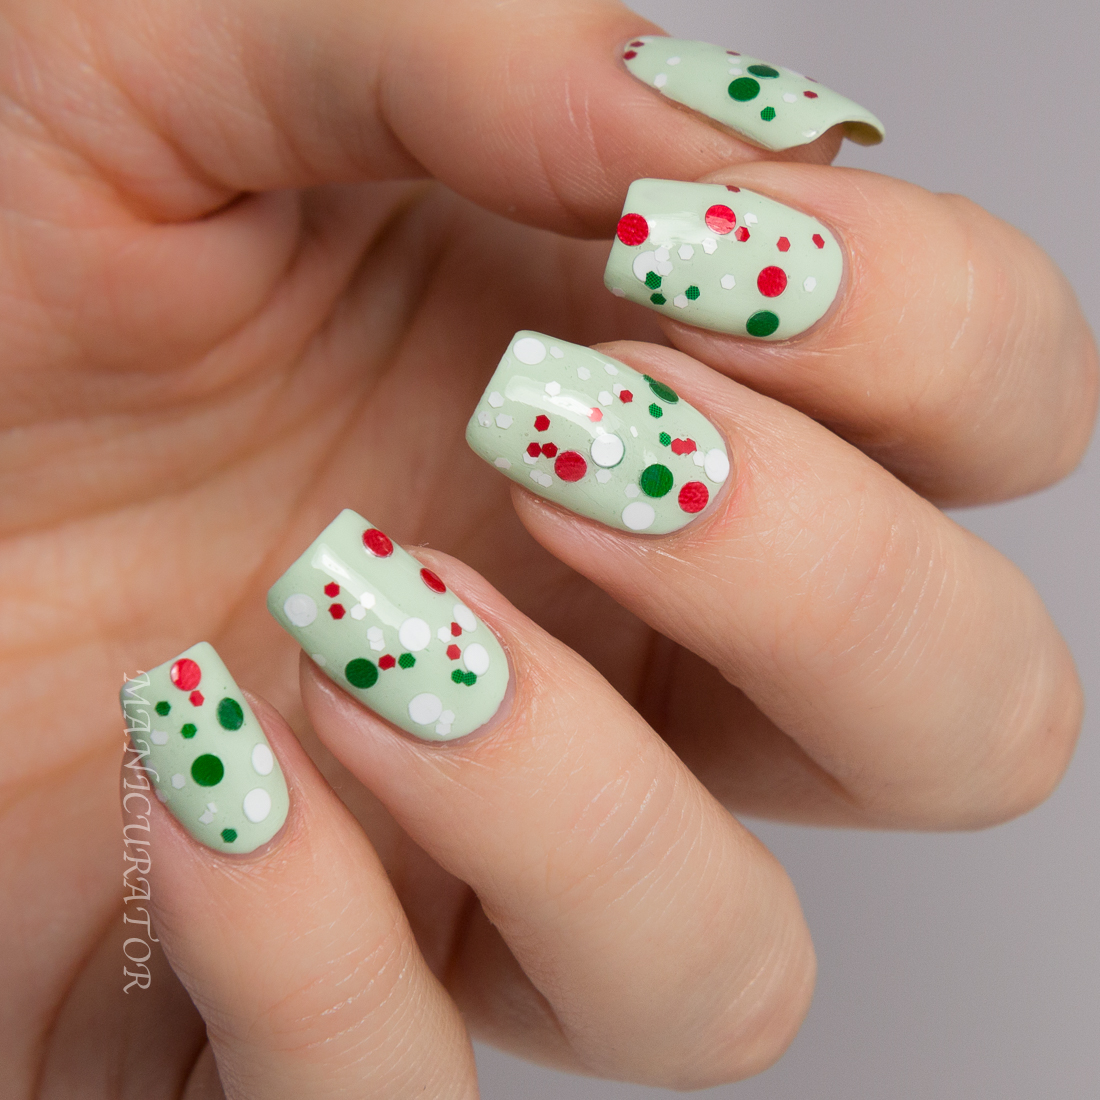 Salon-Perfect-Nail-It-Christmas-Mint-Julep